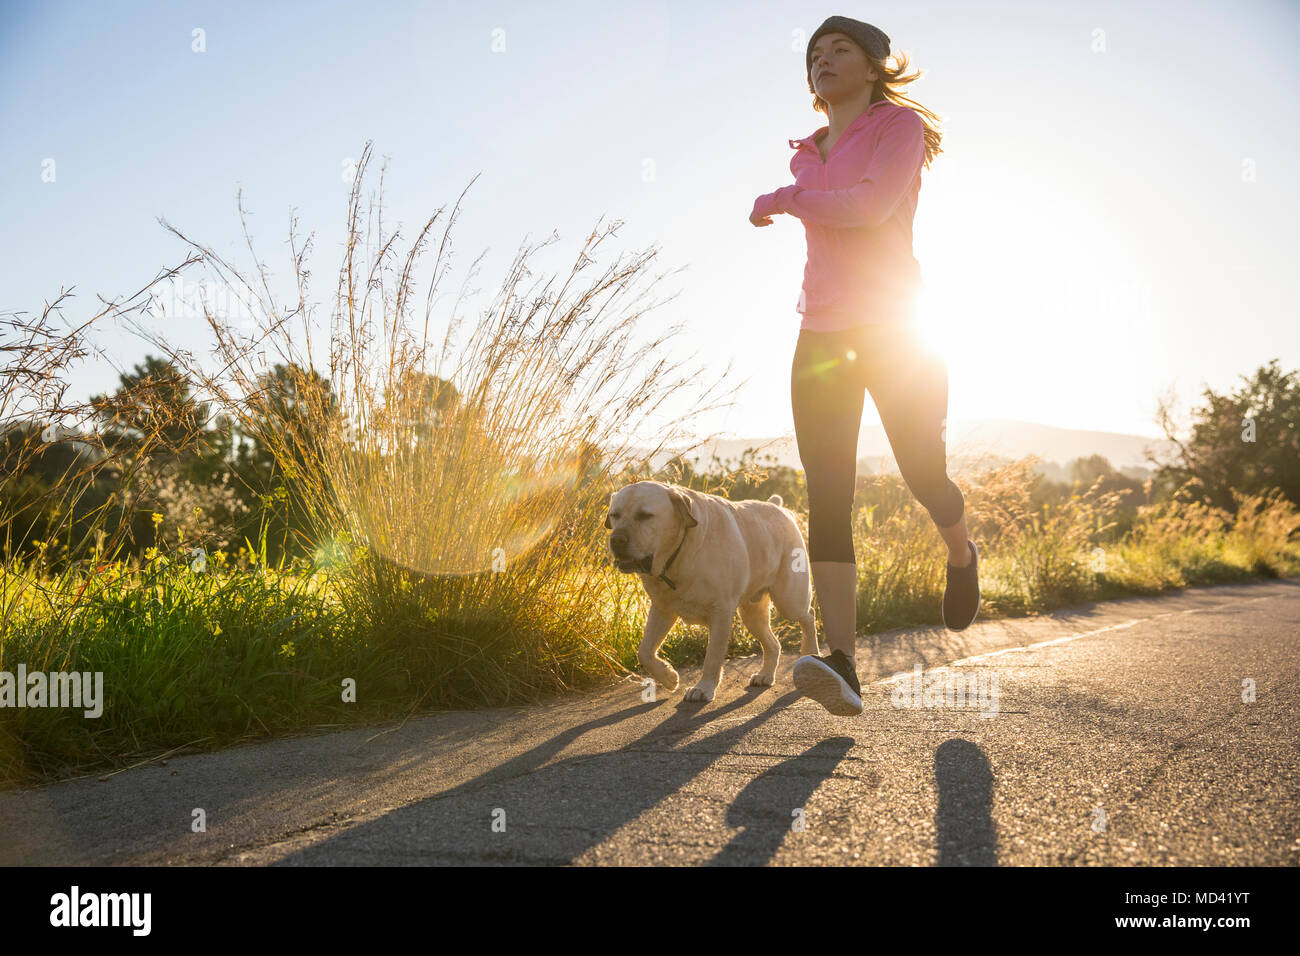 Young woman running along rural road with pet dog, low angle view - Stock Image